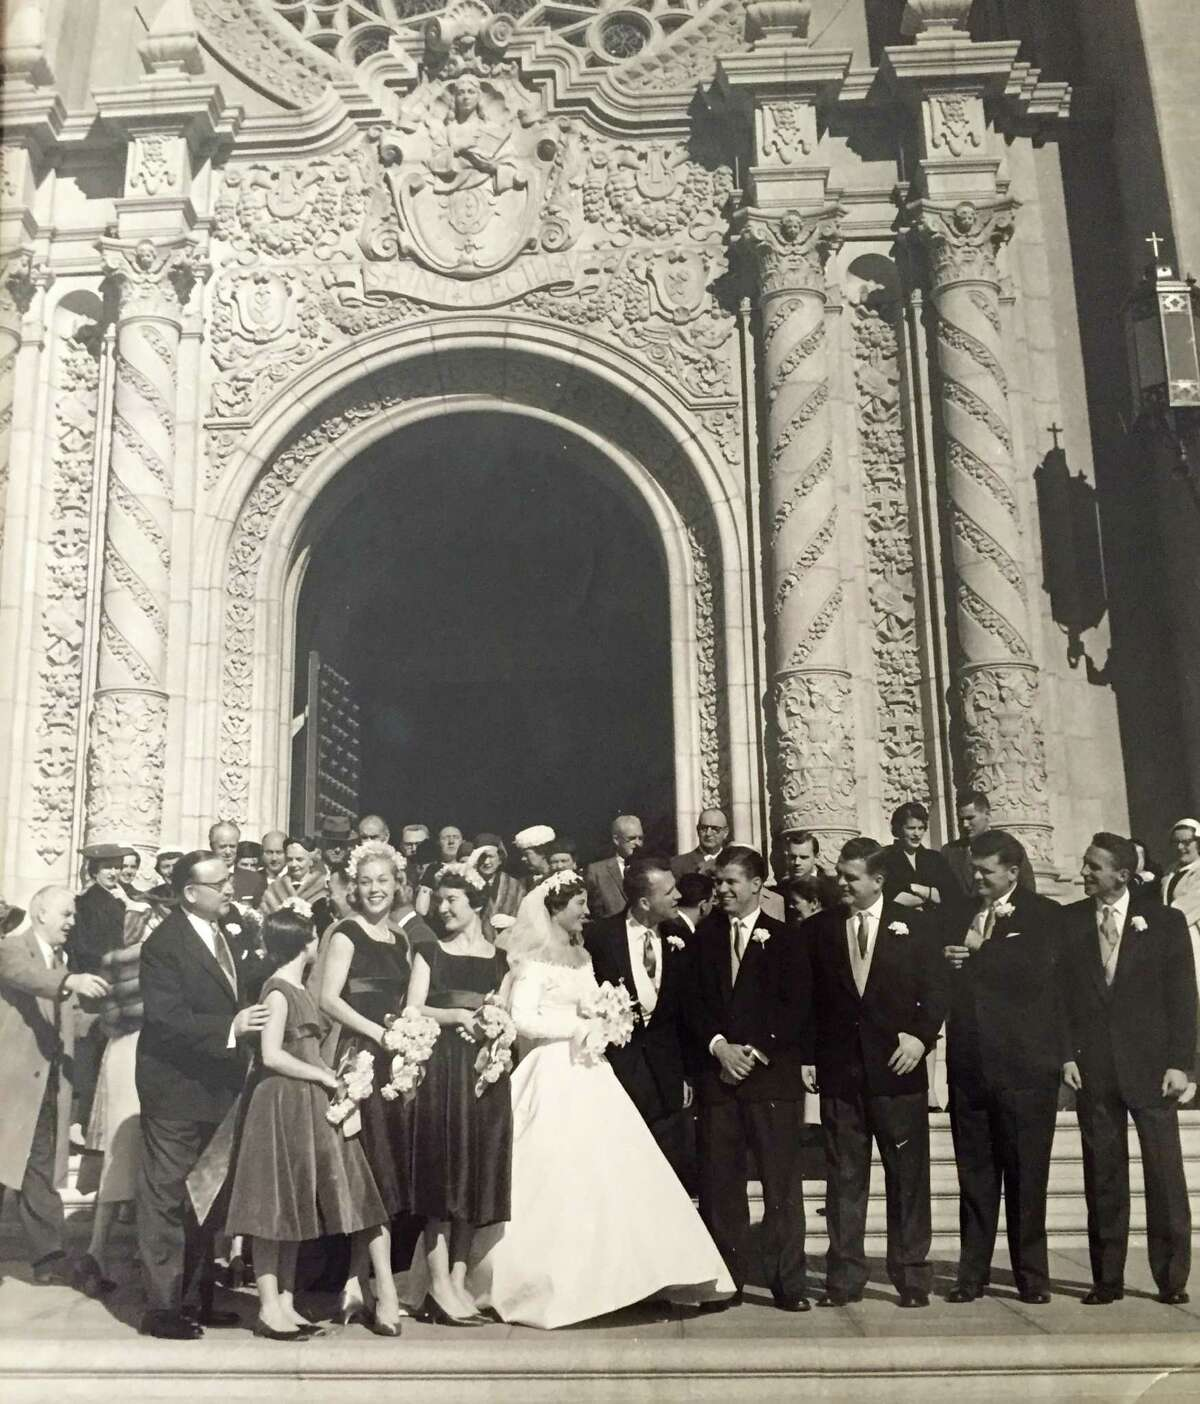 Cynthia Brown Kelly on her wedding day, Jan. Jan 24,1957 in front of Saint Cecilia. Her father, Governor Pat Brown, is to her right, in glasses.